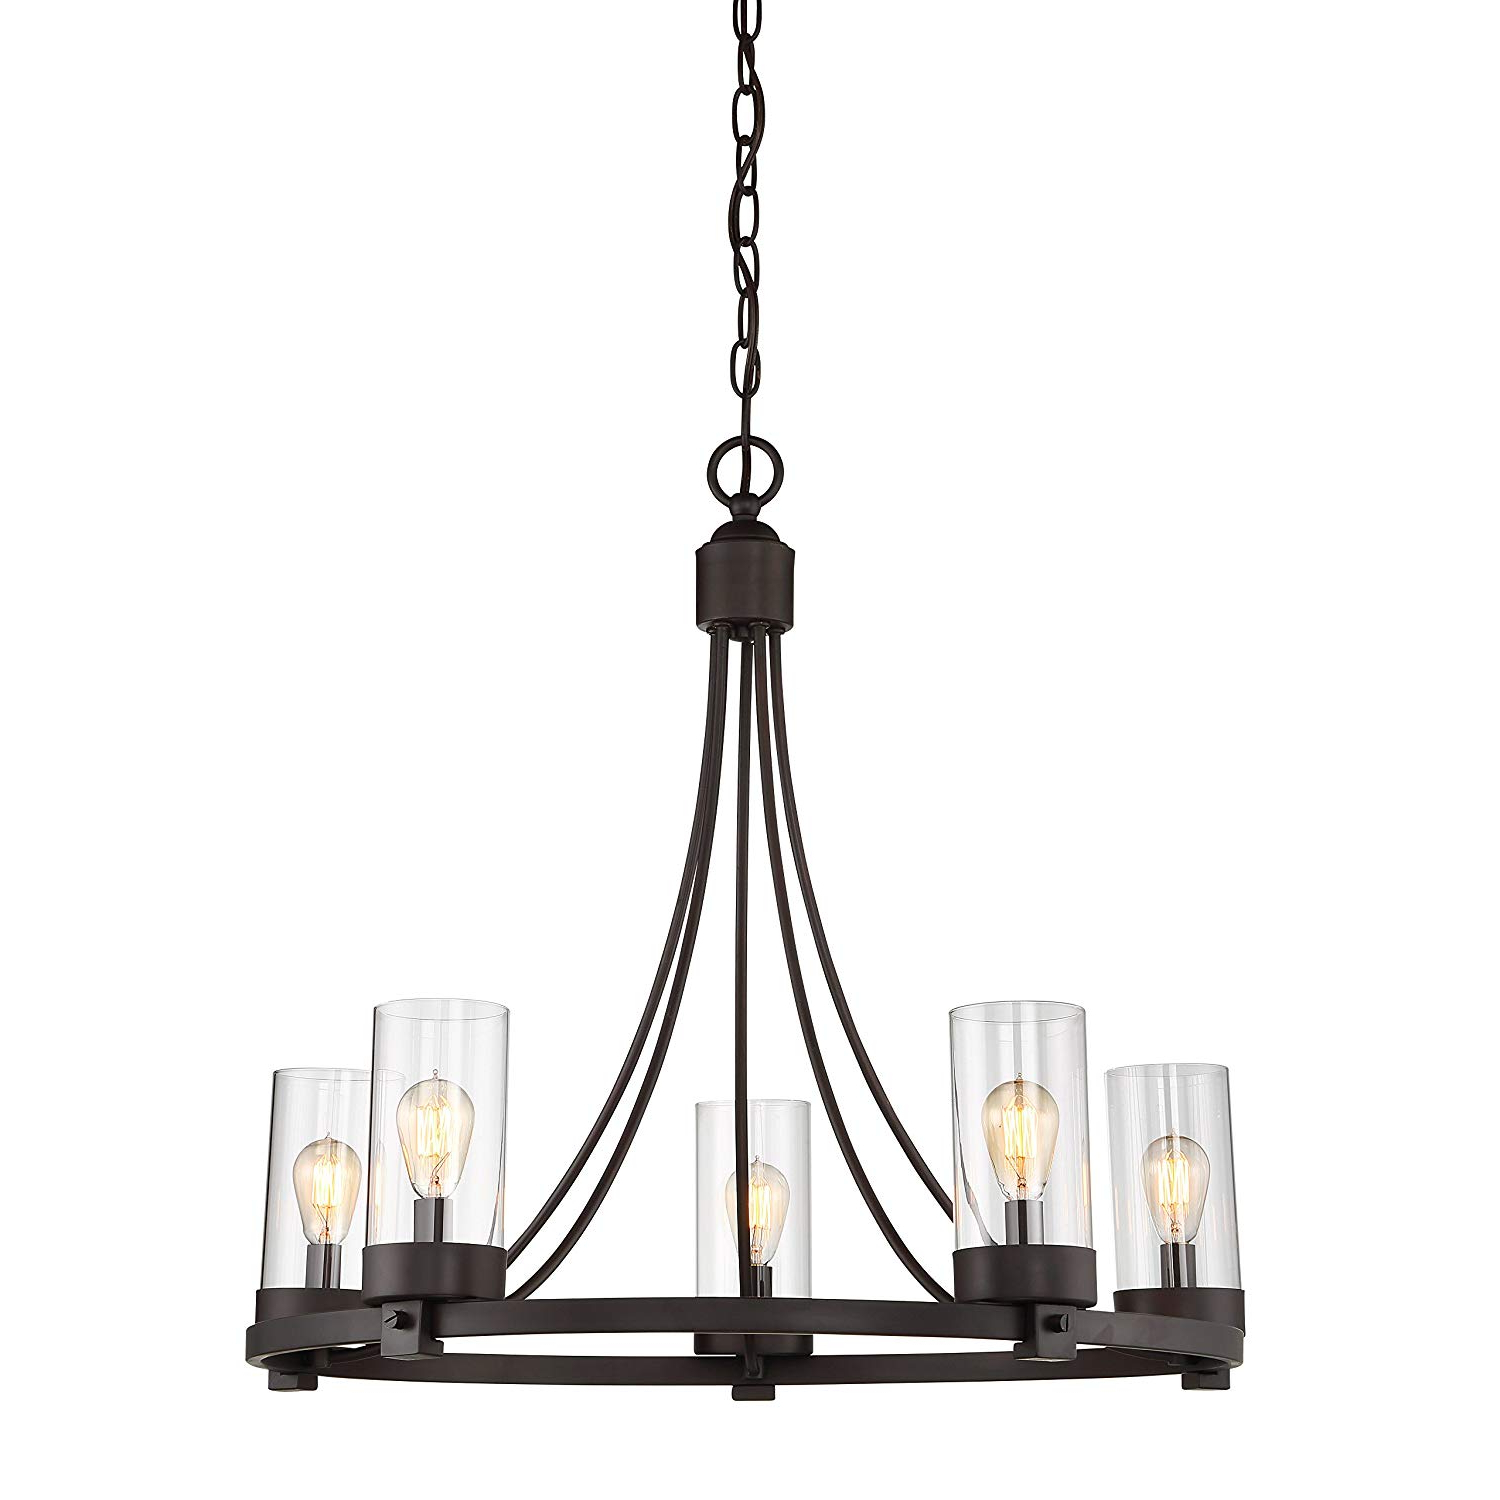 Popular Shaylee 8 Light Candle Style Chandeliers With Regard To Agave Oil Rubbed Bronze 5 Light Candle Style Chandelier (View 18 of 25)